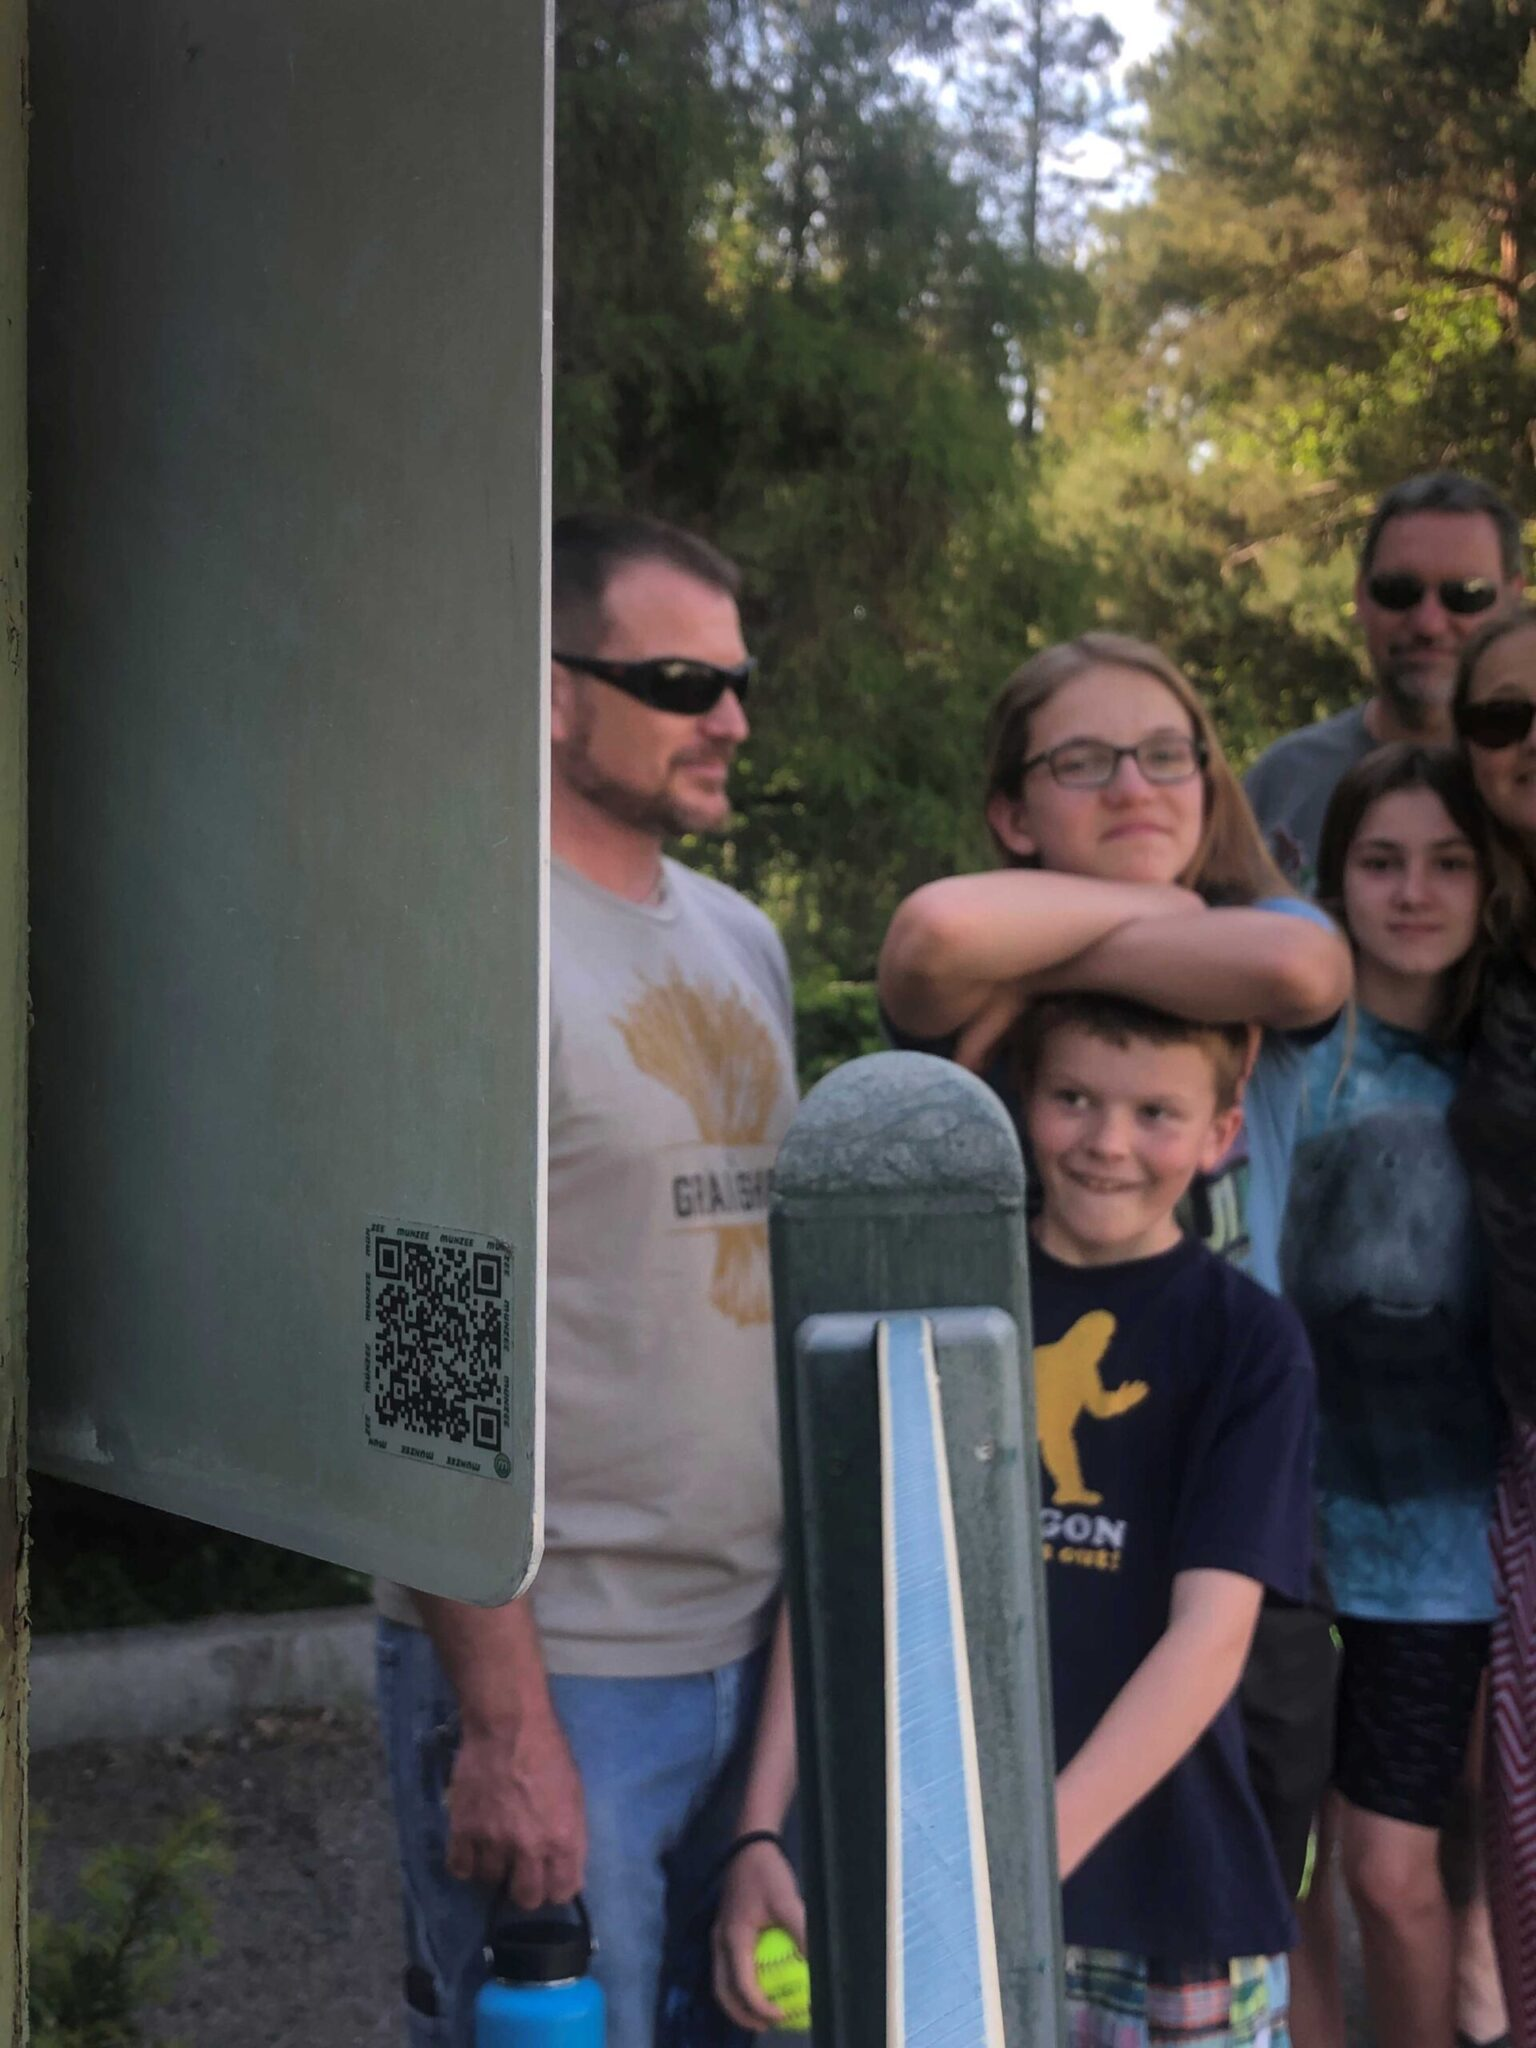 A QR code with a family in the background.